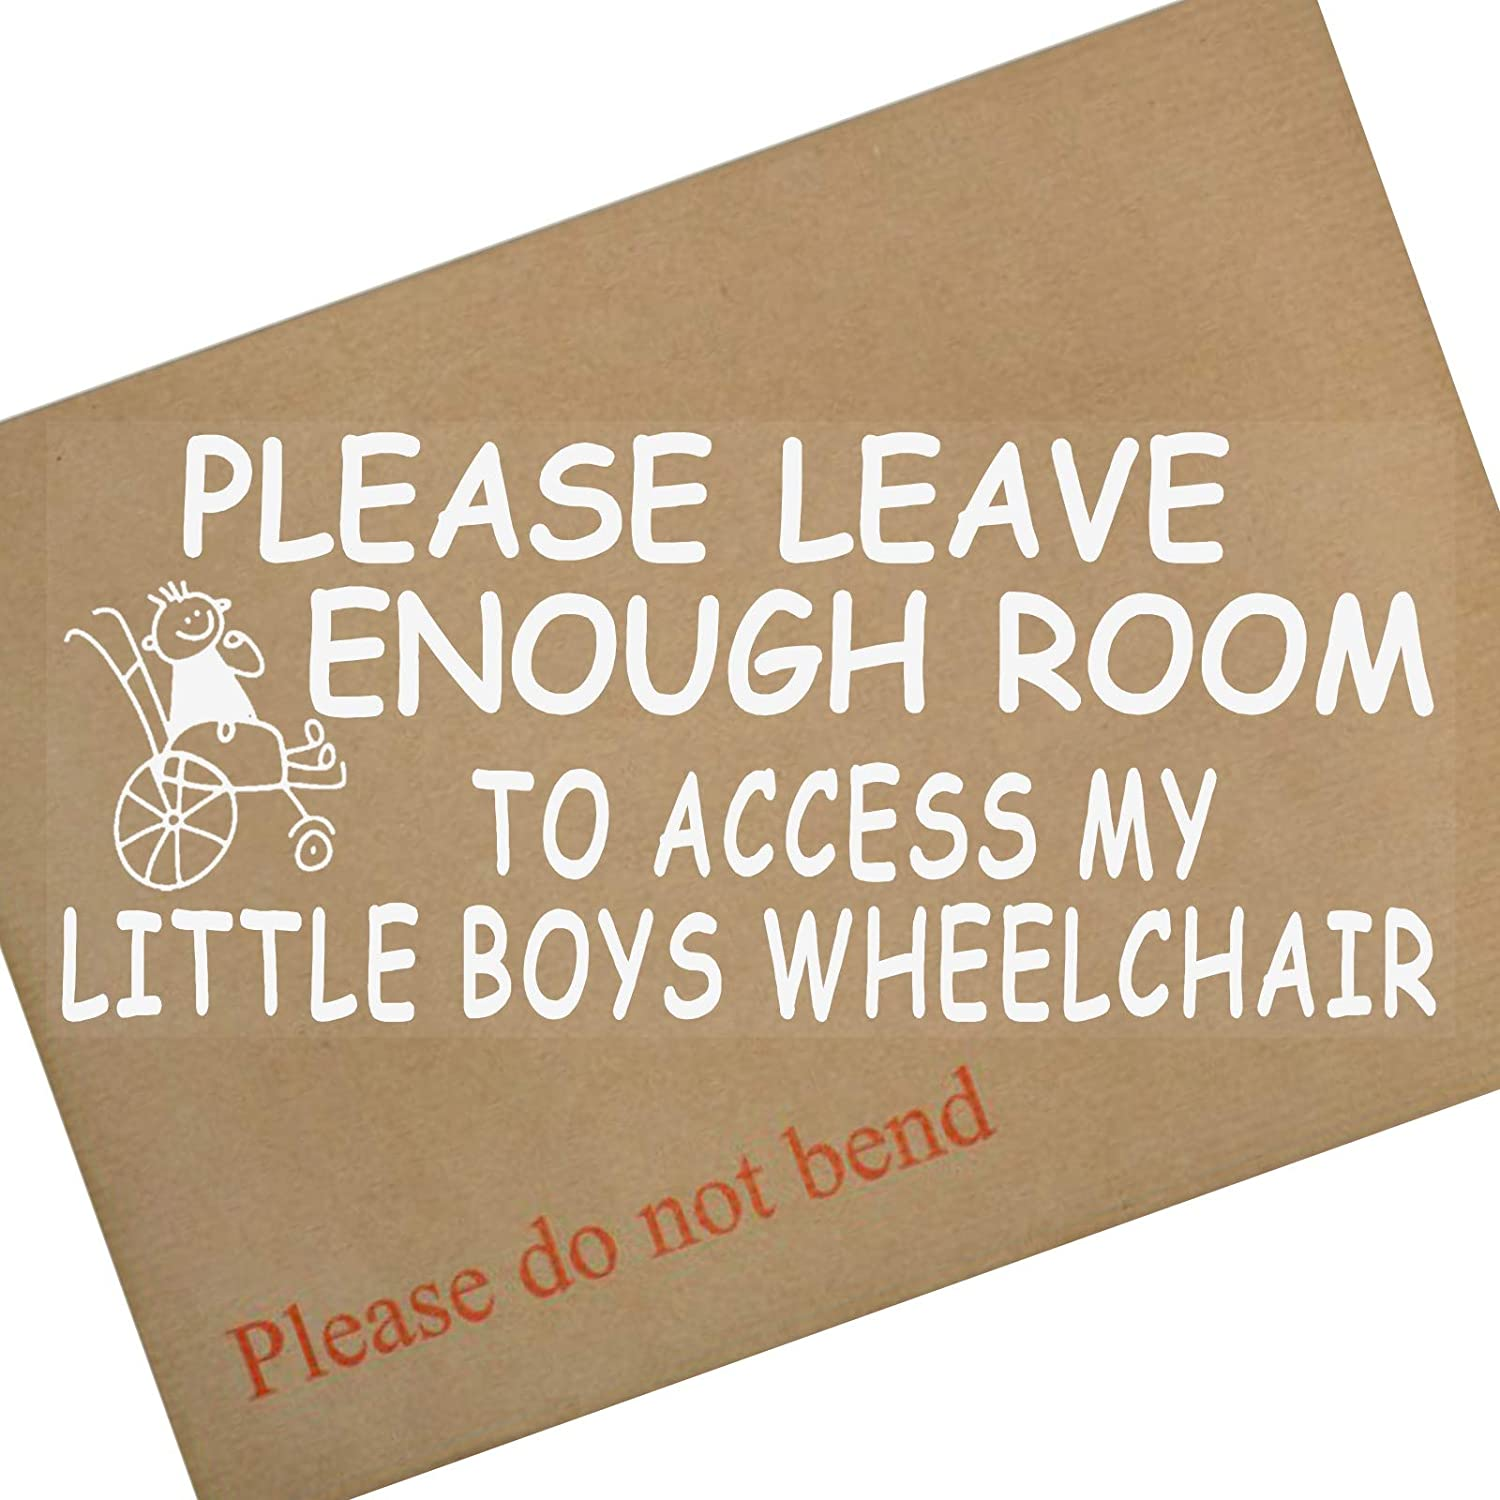 Platinum Place 1 x Please Allow Enough Room to Access My Little Boys Wheelchair-Window Sticker for Disabled Child-Car, Van, Truck, Vehicle.Disability, Scooter Self Adhesive Vinyl Sign Handicapped Logo